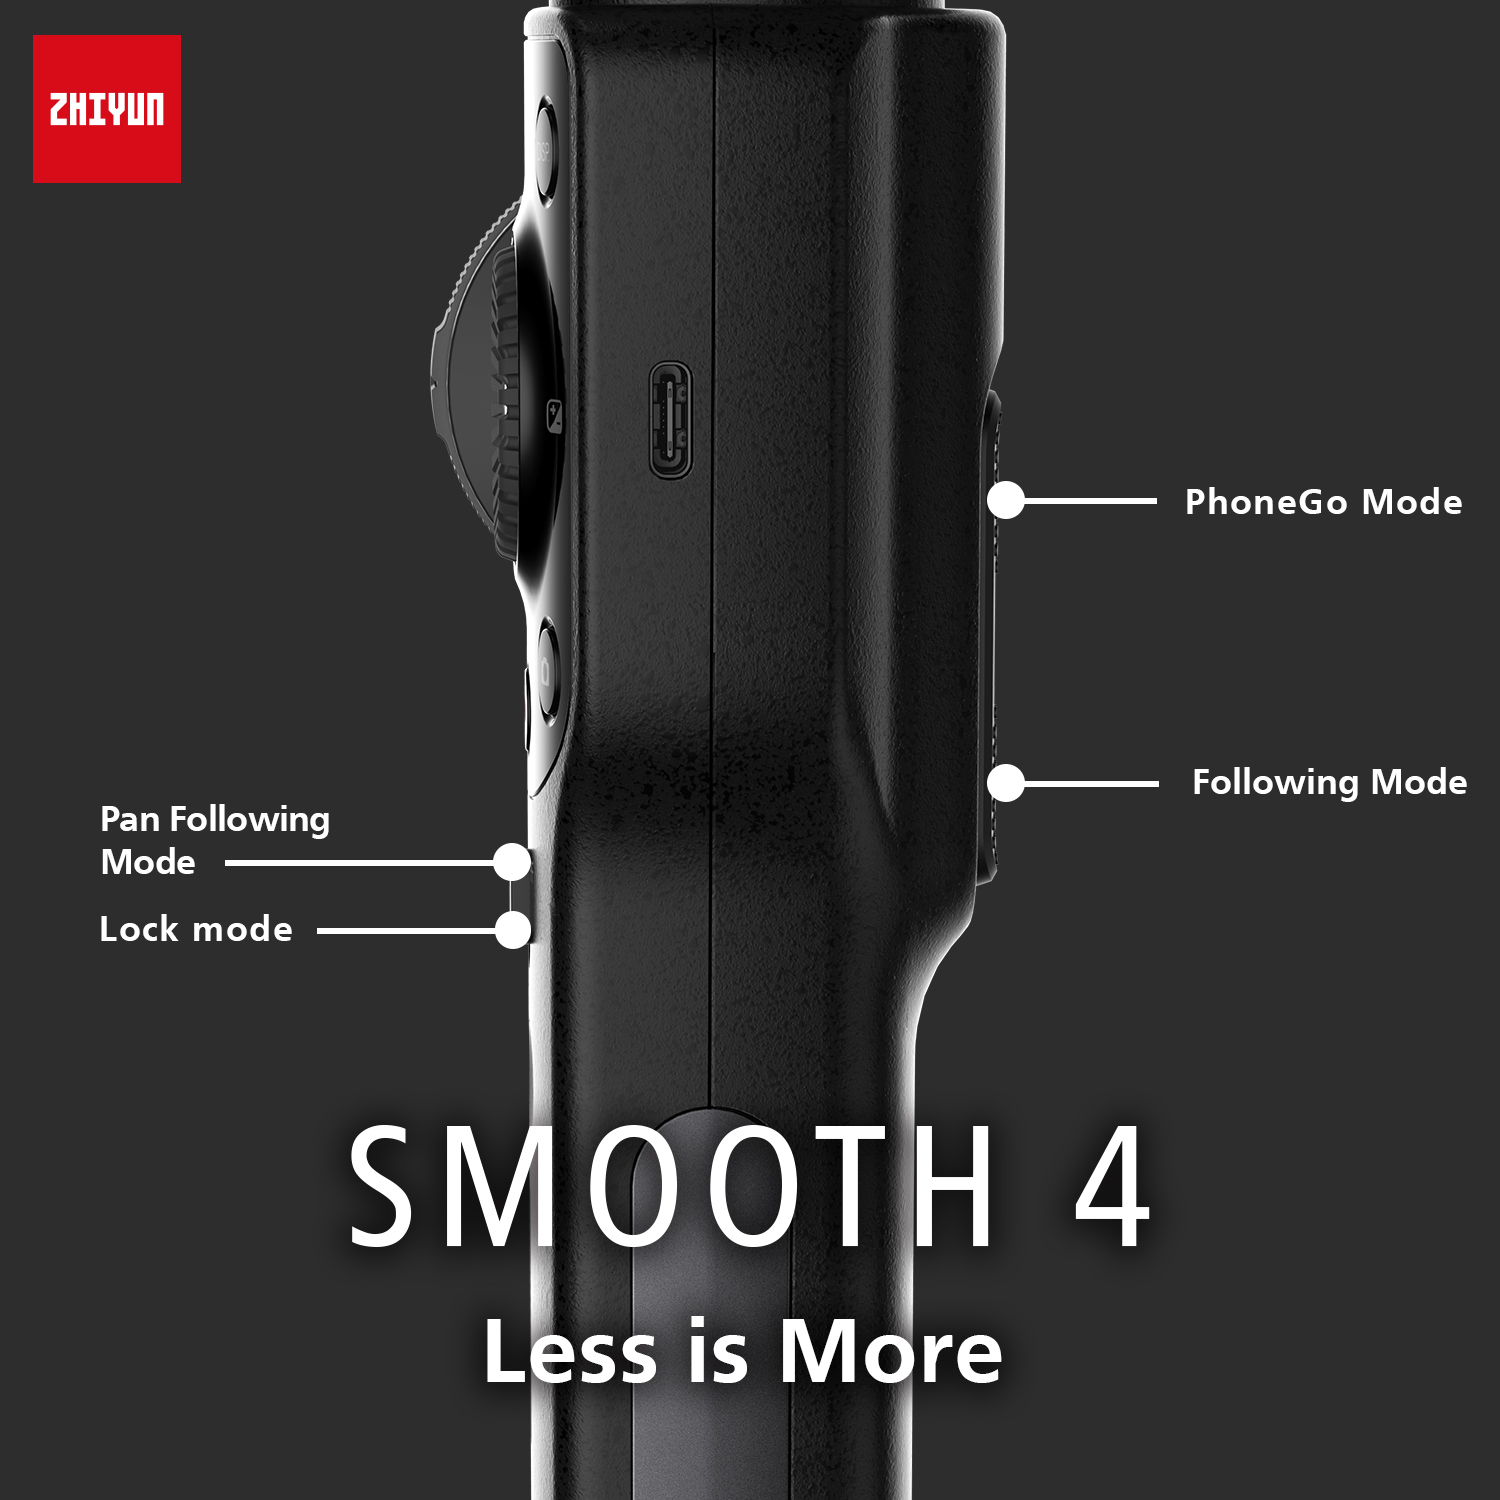 Zhiyun smooth 4 3-axis handheld smartphone gimbal stabilizer for iphone xs xr x 8plus 8 7p 7 samsung s9 s8 s7 & action camera